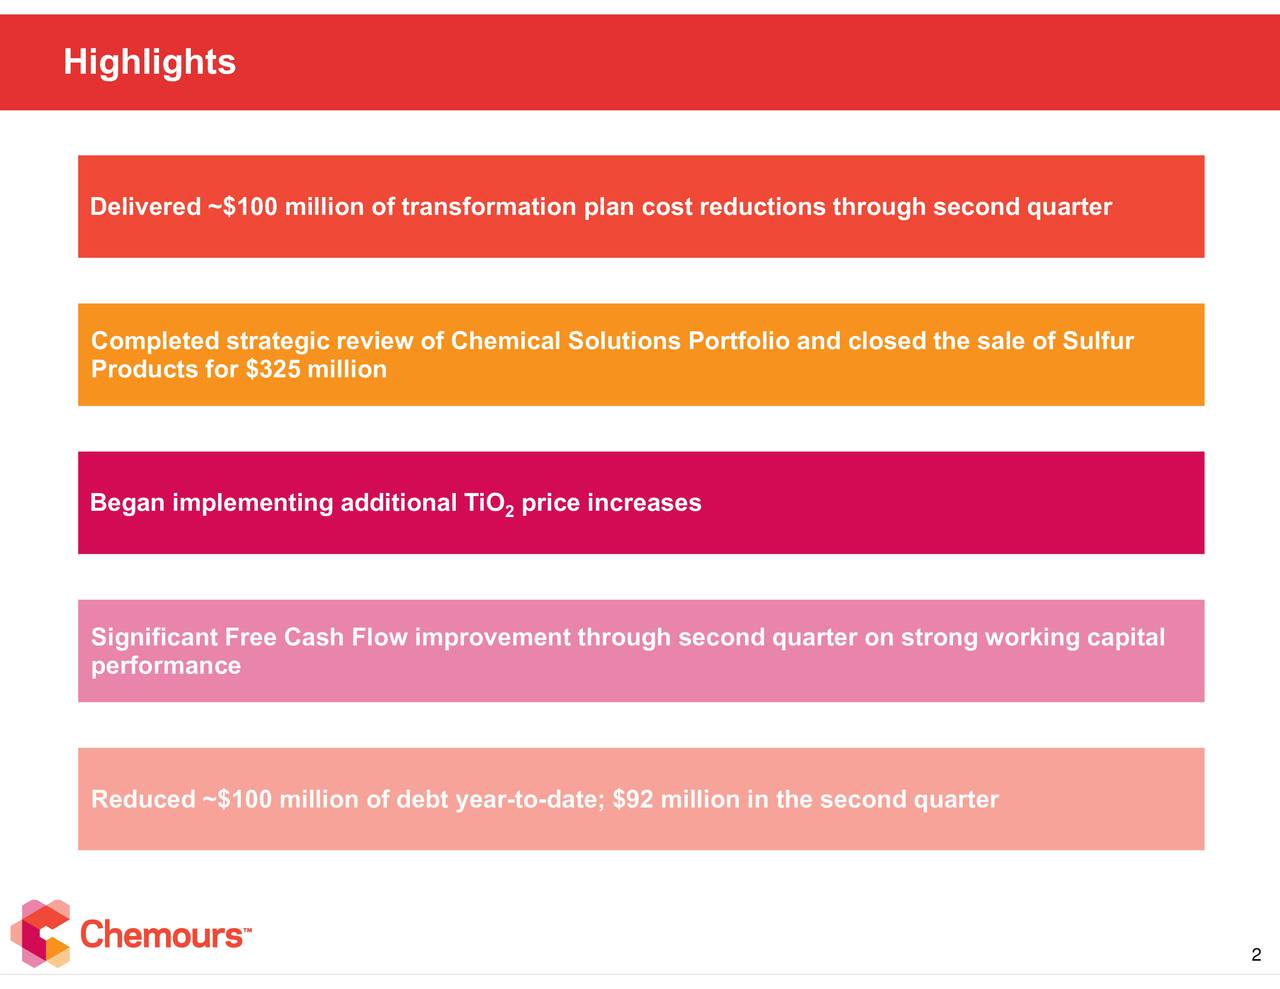 ons Portfolio and closed the sale of Sulfur an cost reductions through second quarternd quarter on strong working capital p2ice increases o-date; $92 million in the second quarter Delivered ~$100 millionferansfmrpleientil g additional TiO0mmprlve Highlights